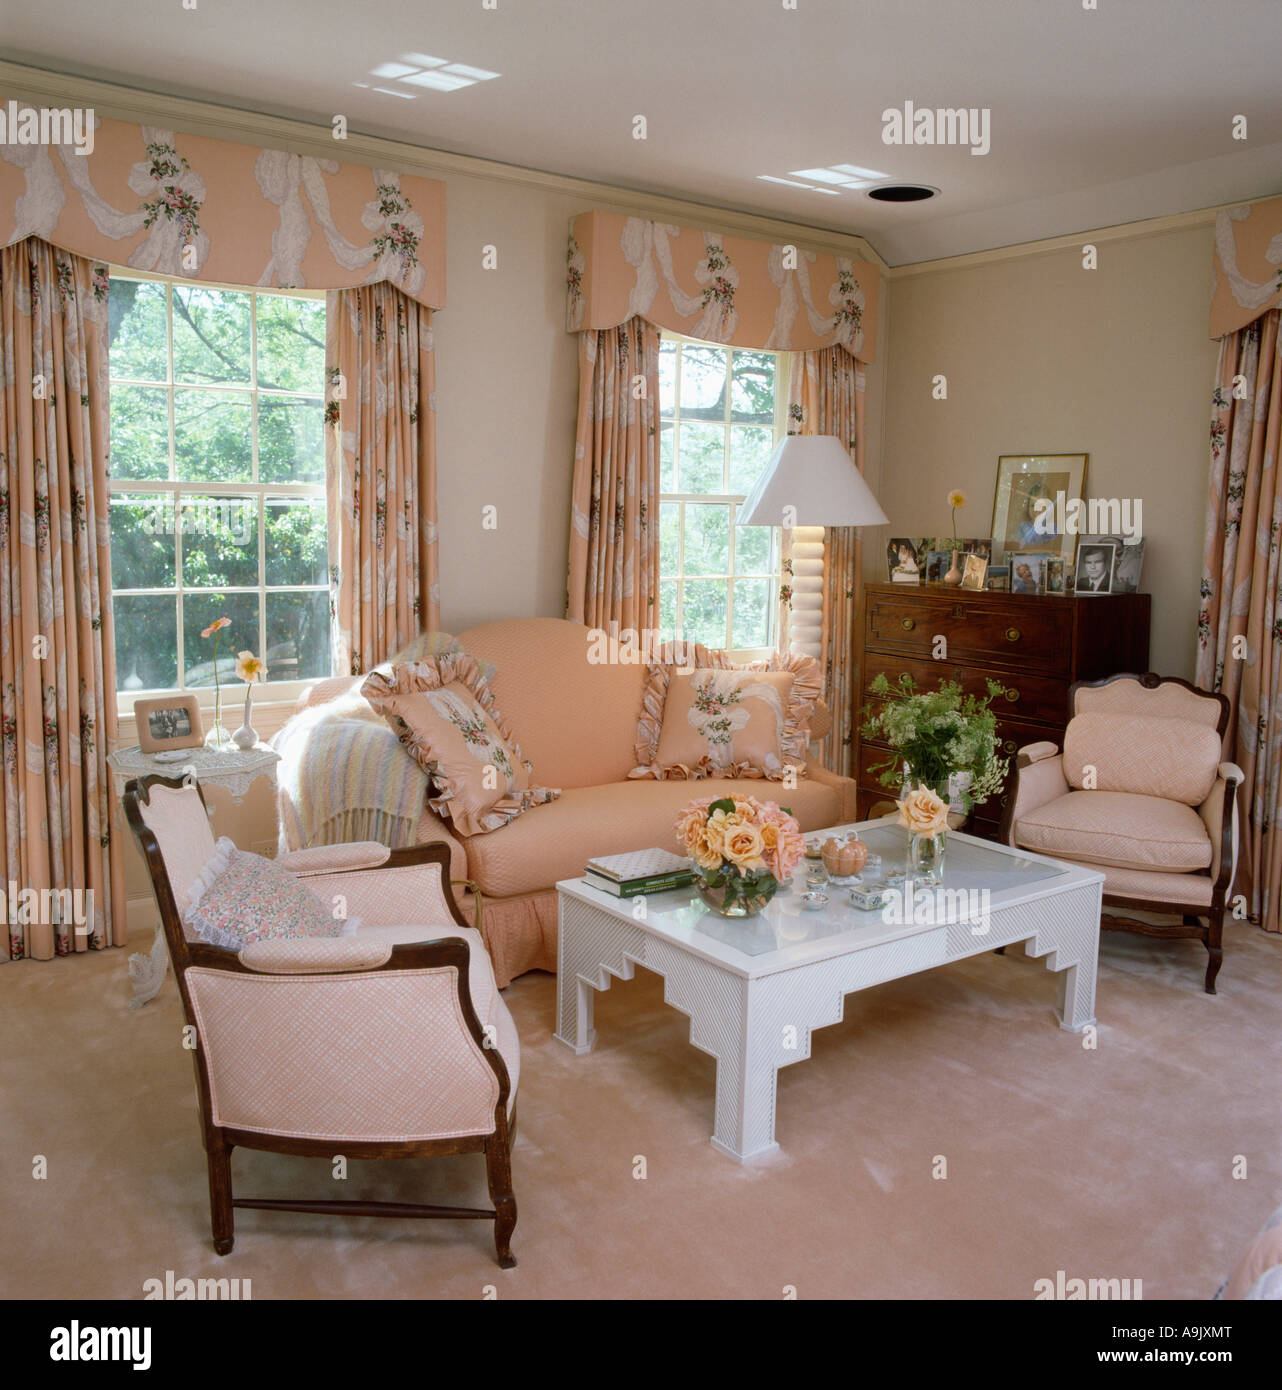 Peach Sofa And Patterned Curtains With Pelmets In Peach Eighties Stock Photo Royalty Free Image